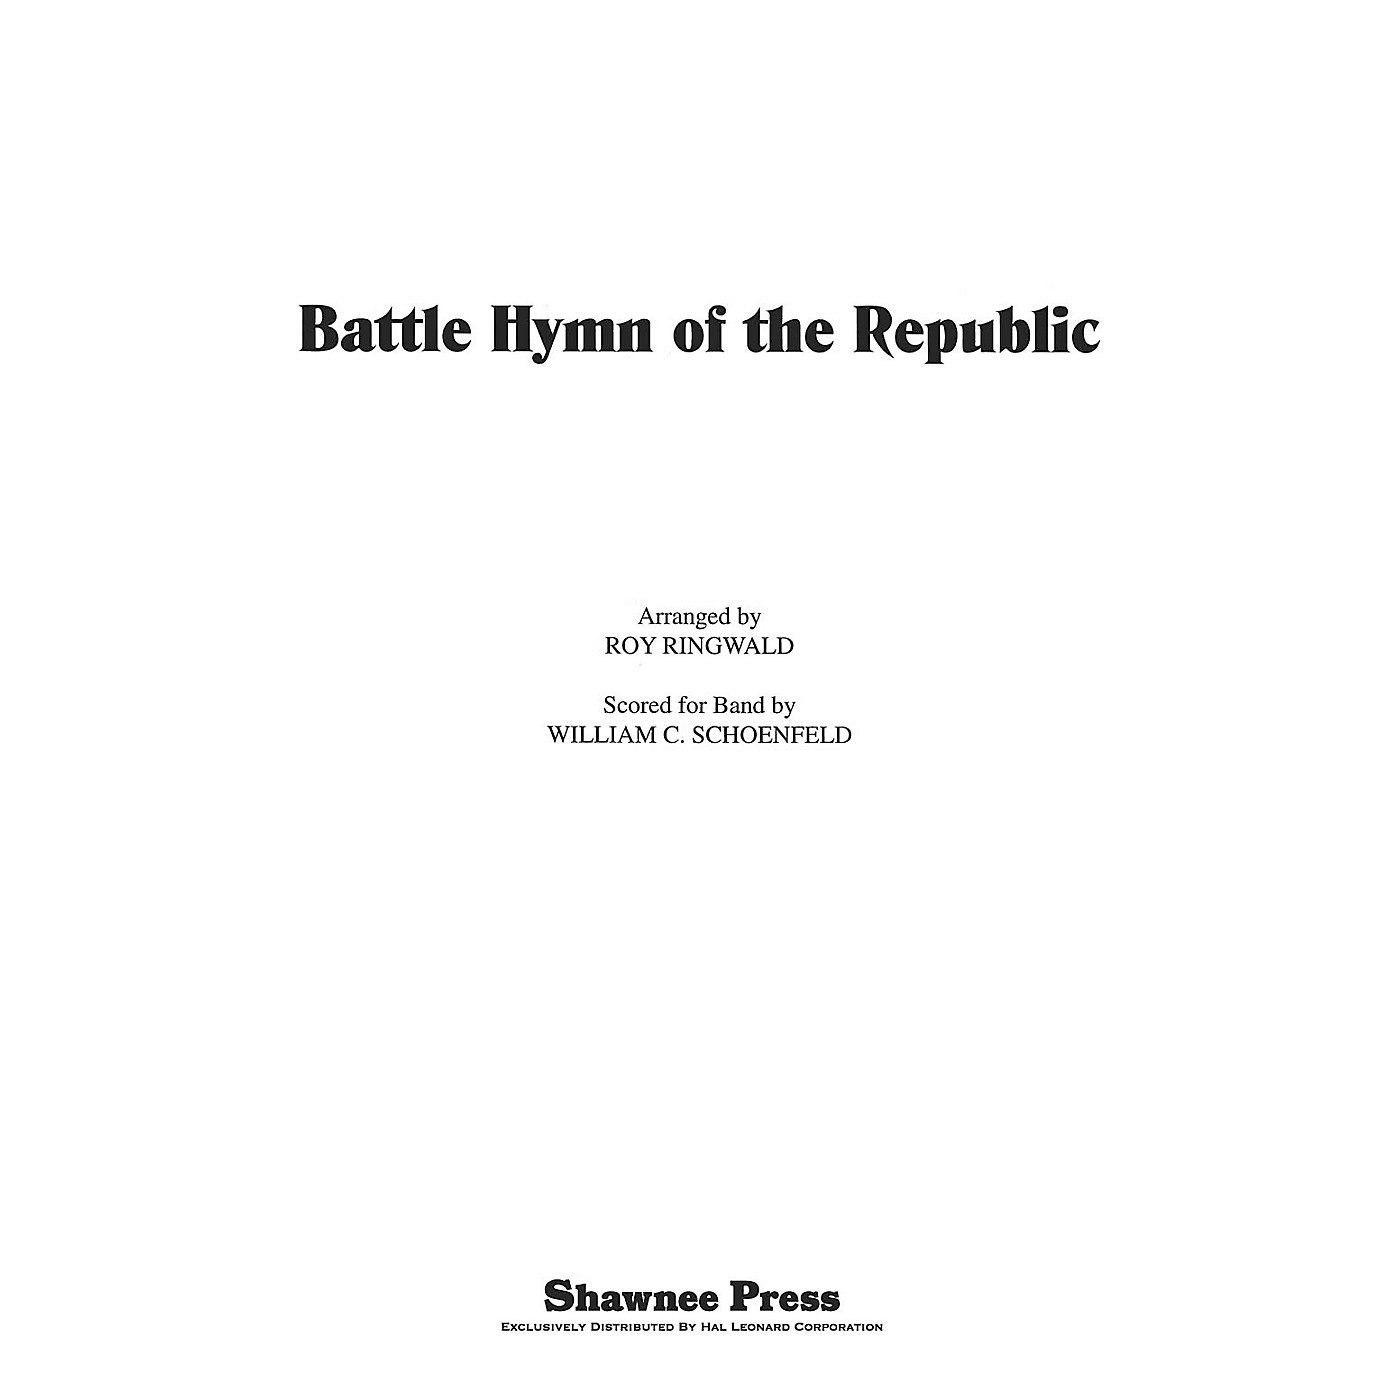 Hal Leonard Battle Hymn of the Republic Score & Parts Arranged by Roy Ringwald thumbnail